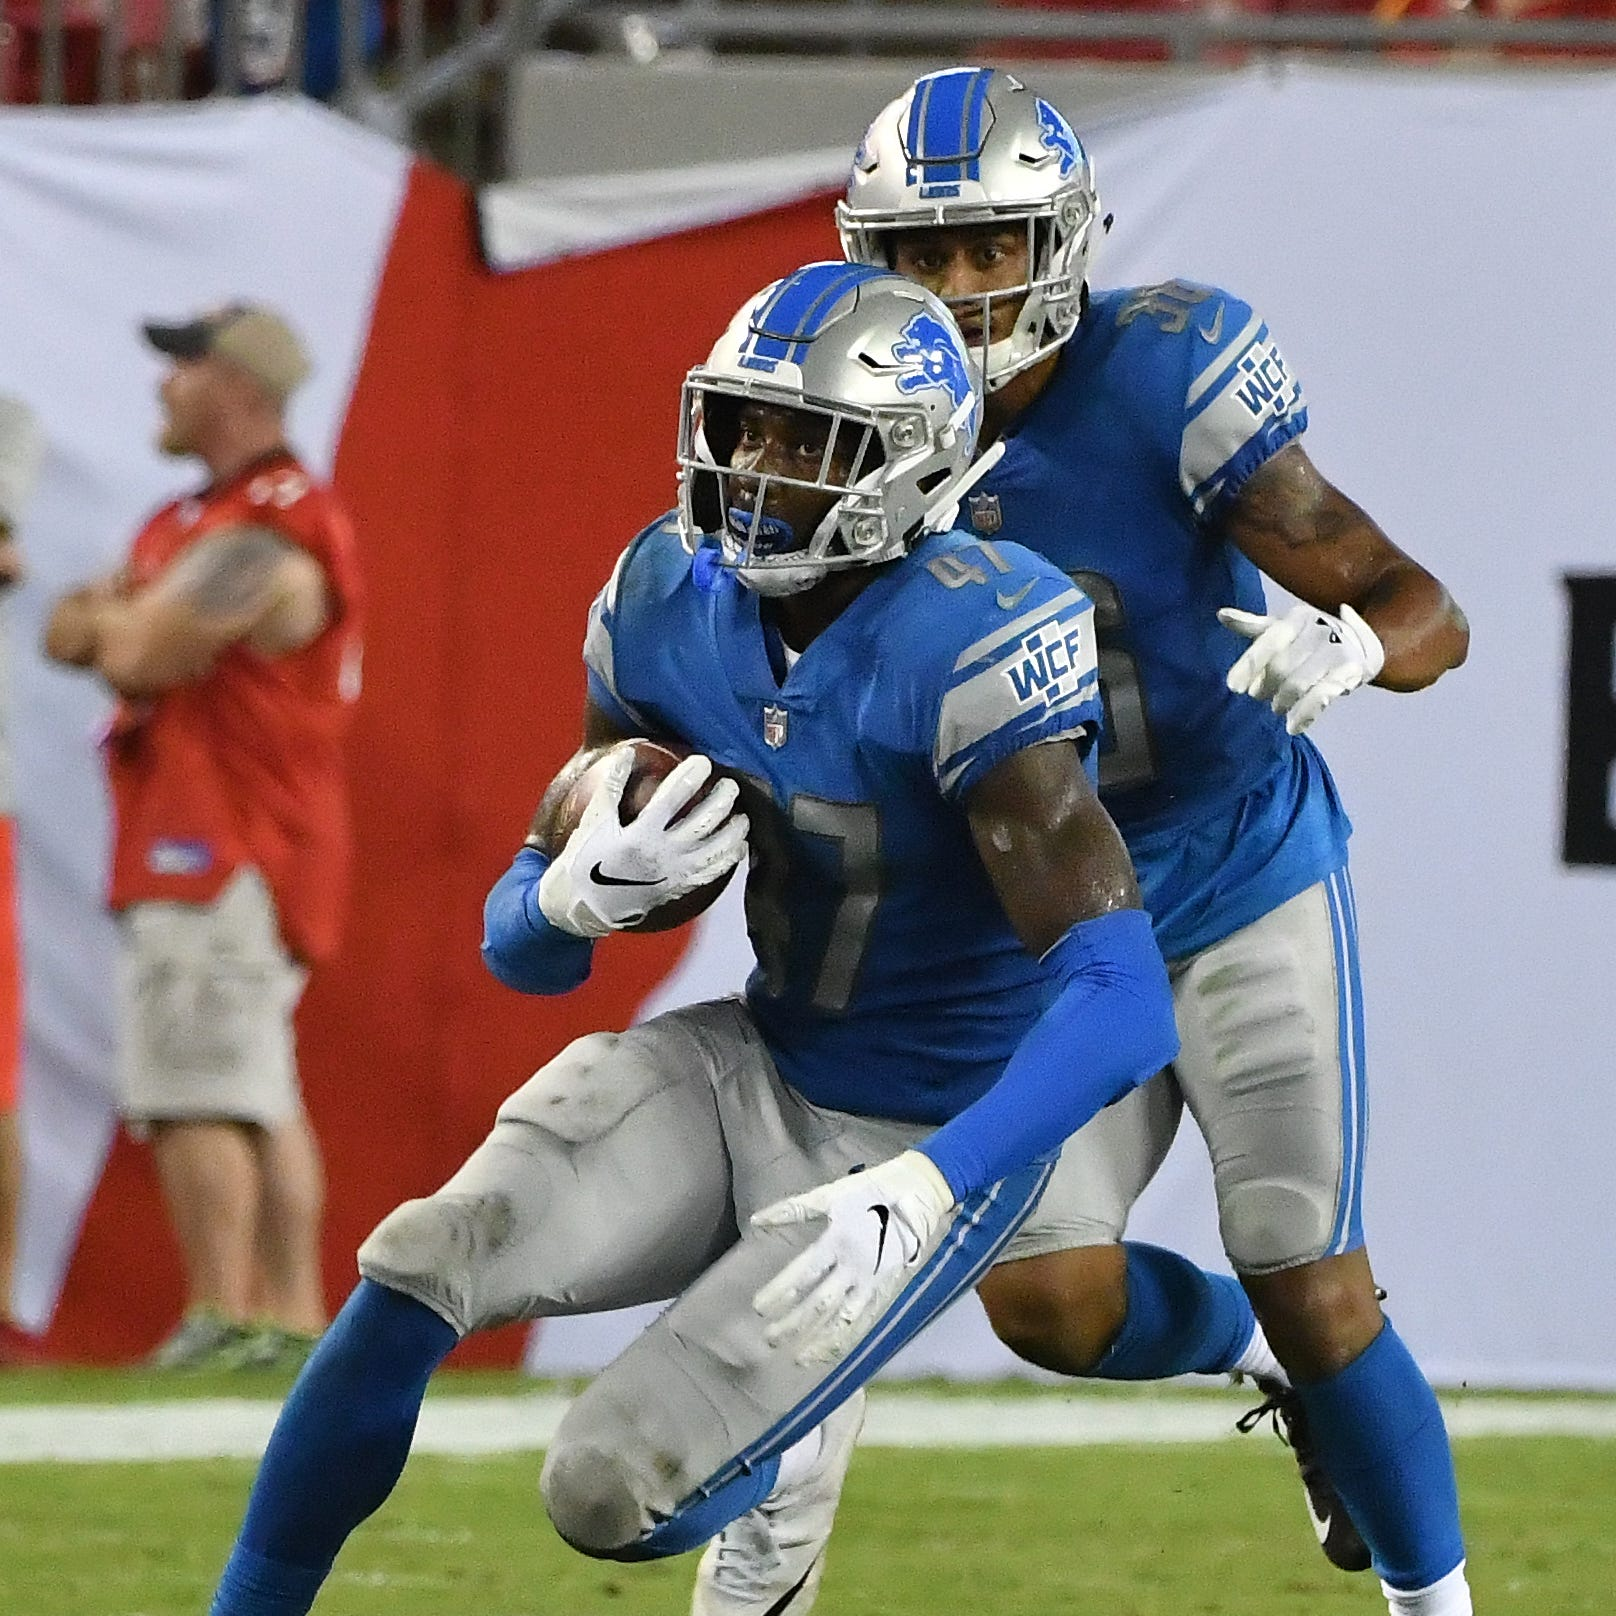 Rookie safety Walker making Lions gamble look good